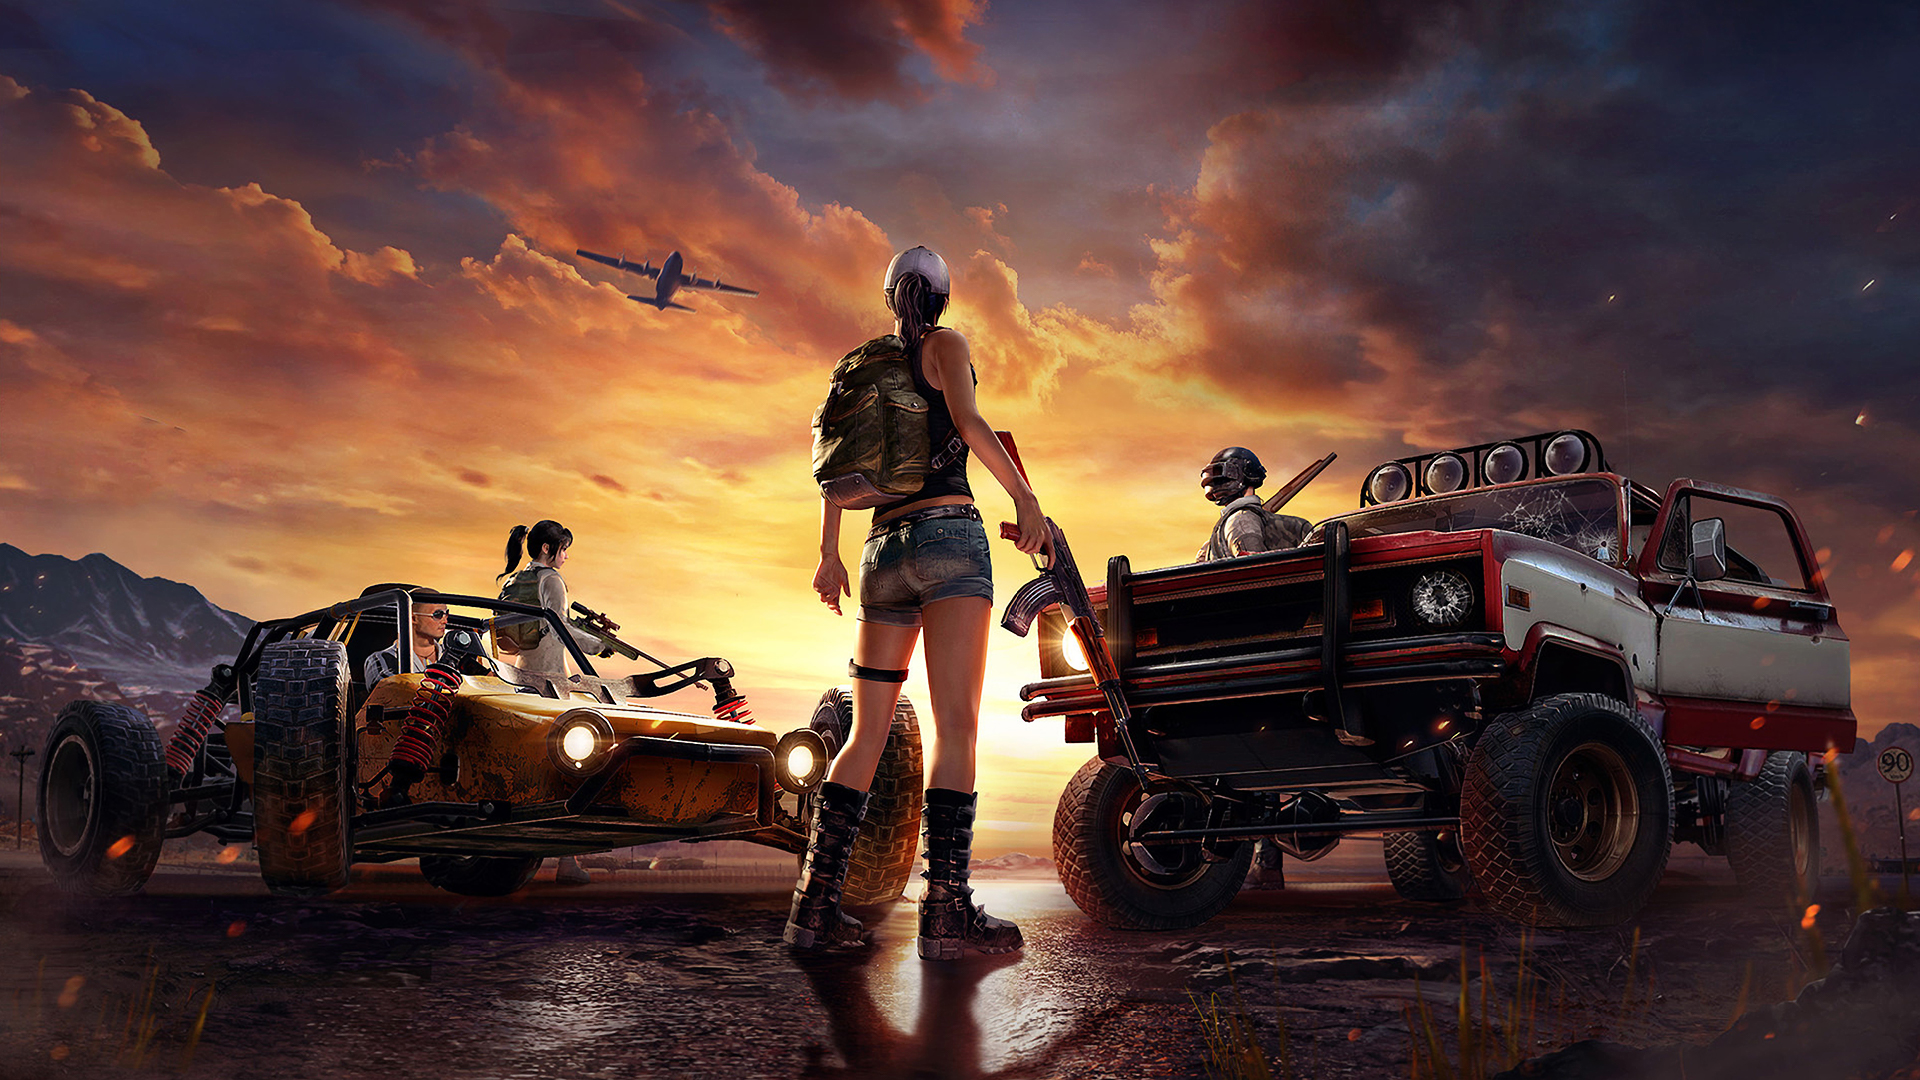 1920x1080 Pubg Artwork 4k Laptop Full Hd 1080p Hd 4k: 1920x1080 PlayerUnknowns Battlegrounds Art Laptop Full HD